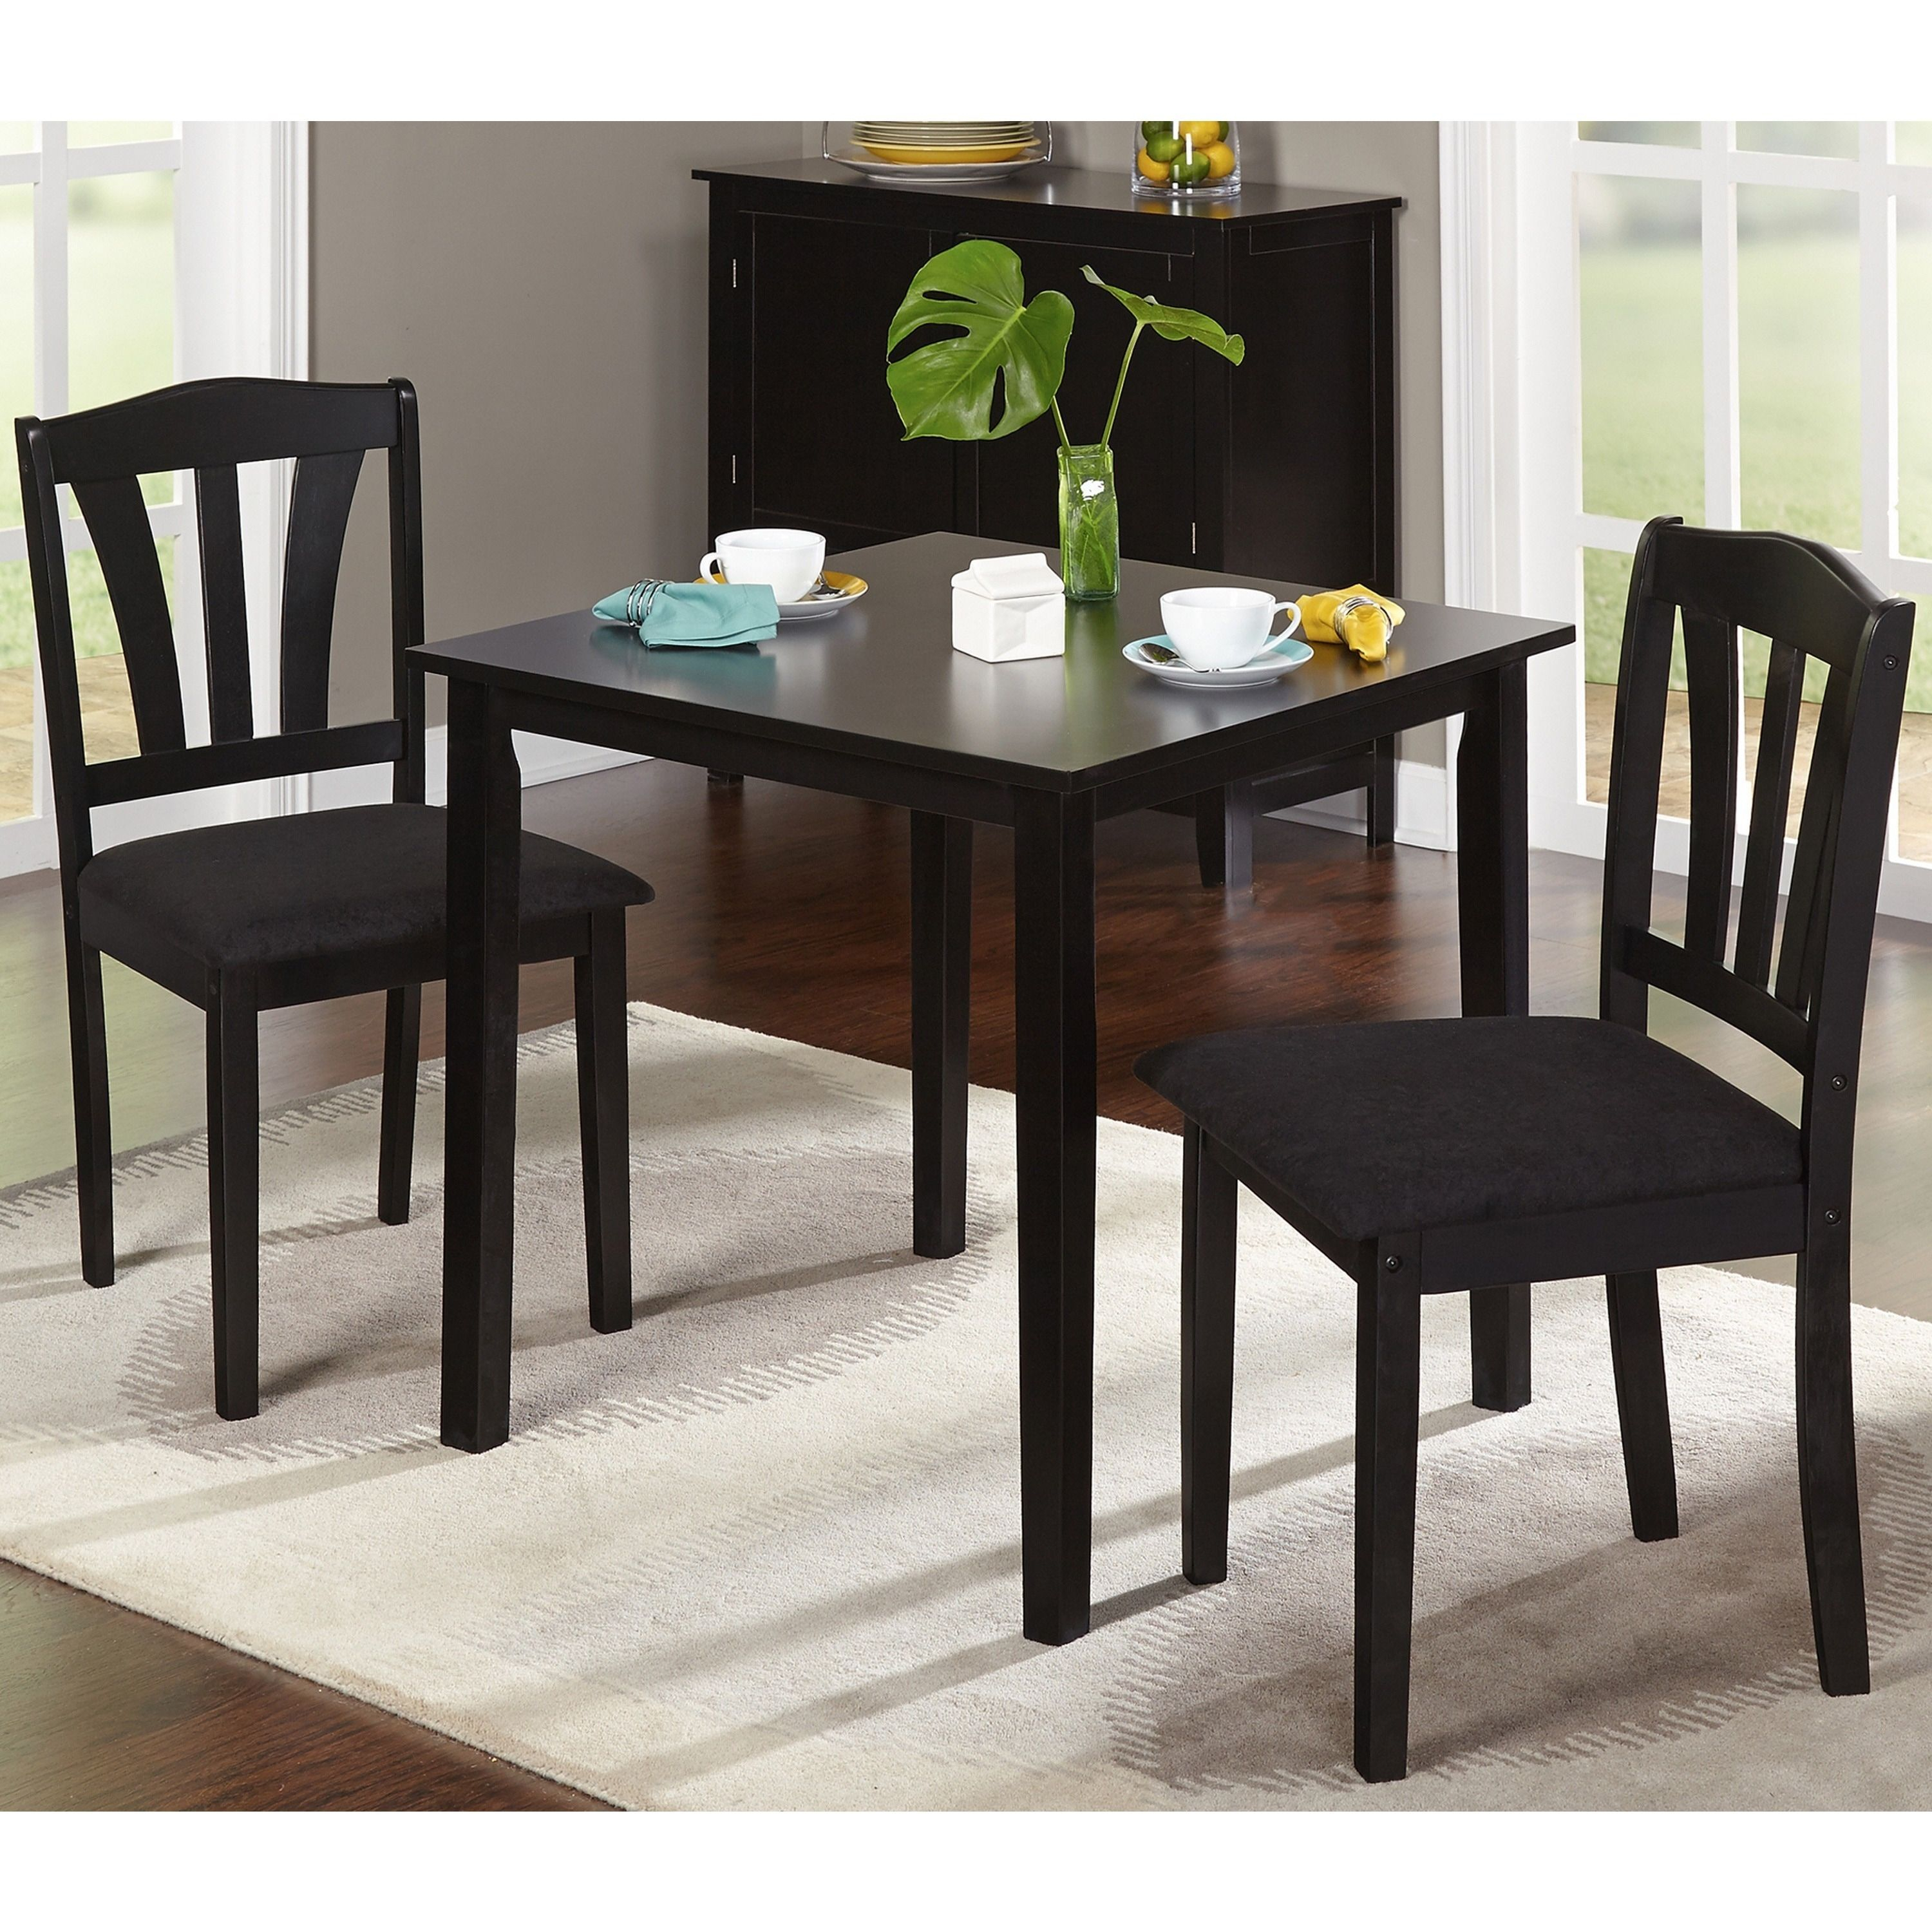 Porch & Den Third Ward Michigan 3 Piece Dining Set (Black Wood With Regard To Most Up To Date Baillie 3 Piece Dining Sets (Image 16 of 20)